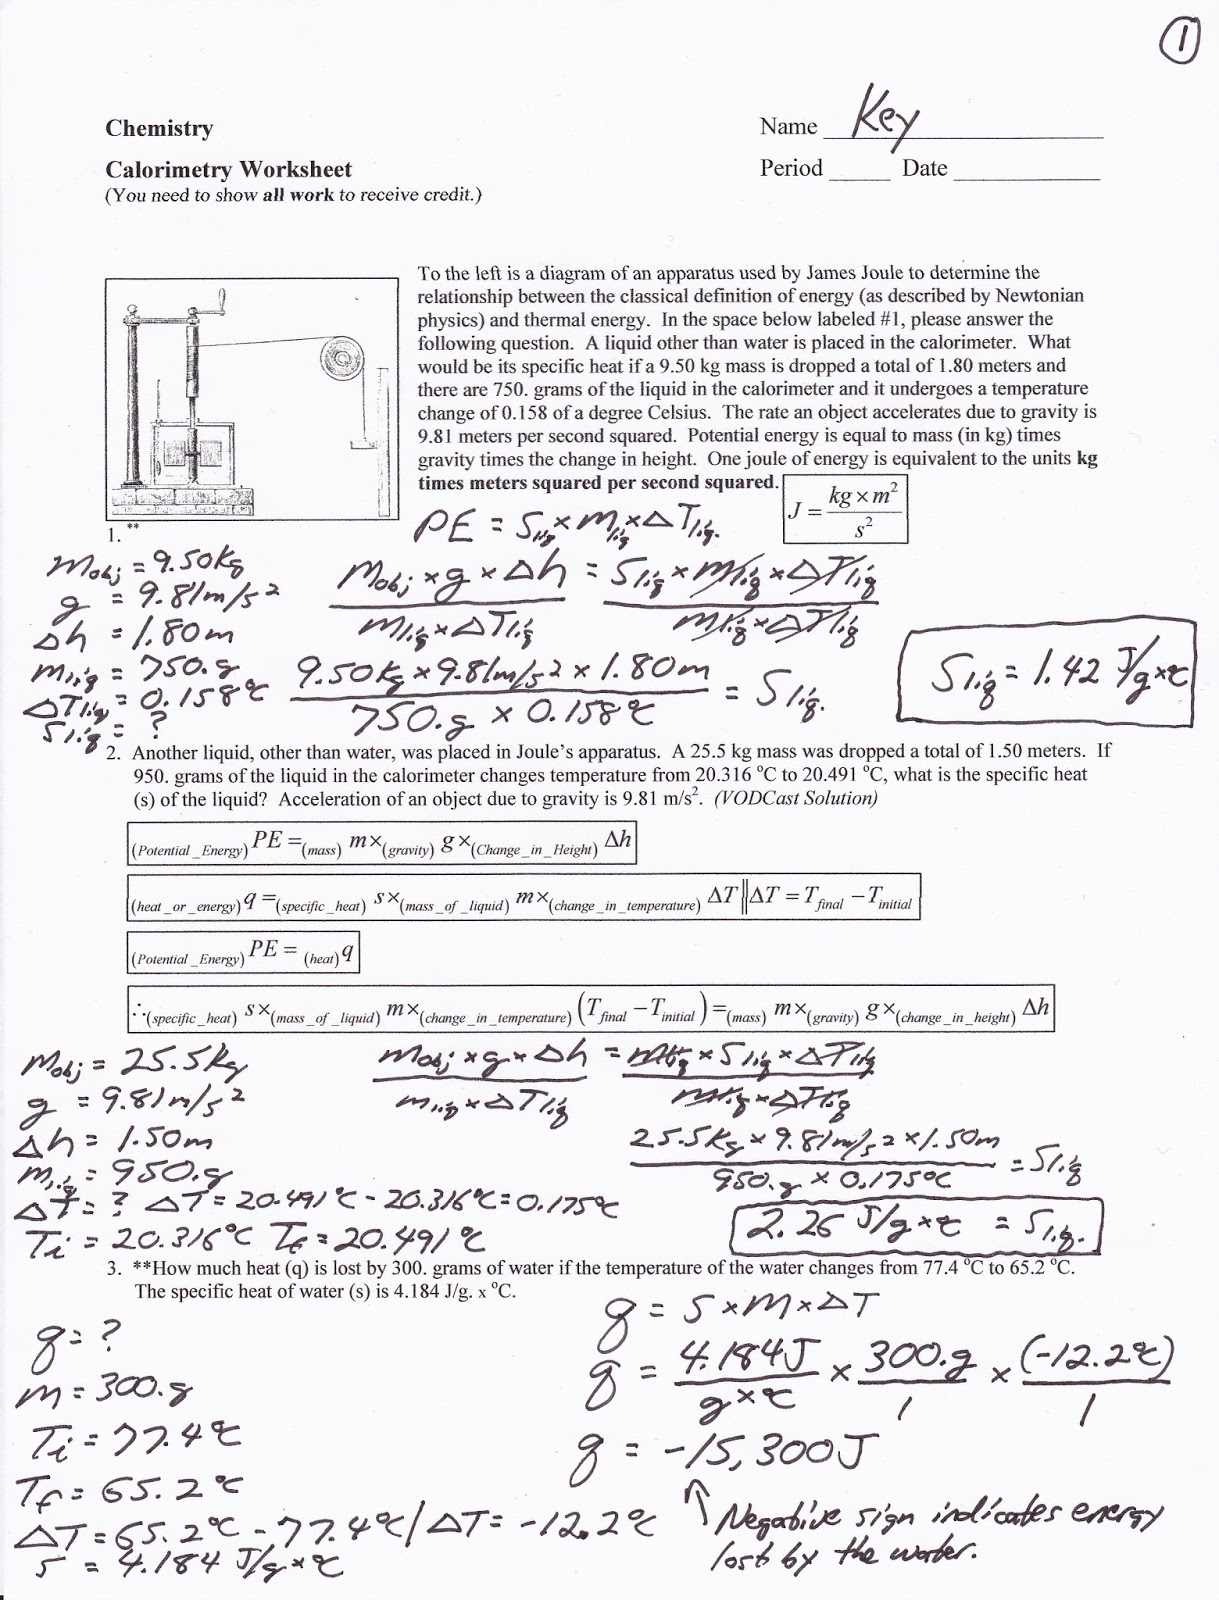 Worksheets Calorimetry Worksheet mr brueckner 2017 2018 chemistry blog october use the link above to watch a video summarizing james joules experiment for part of on joule start at about 3 minutes 10 seconds